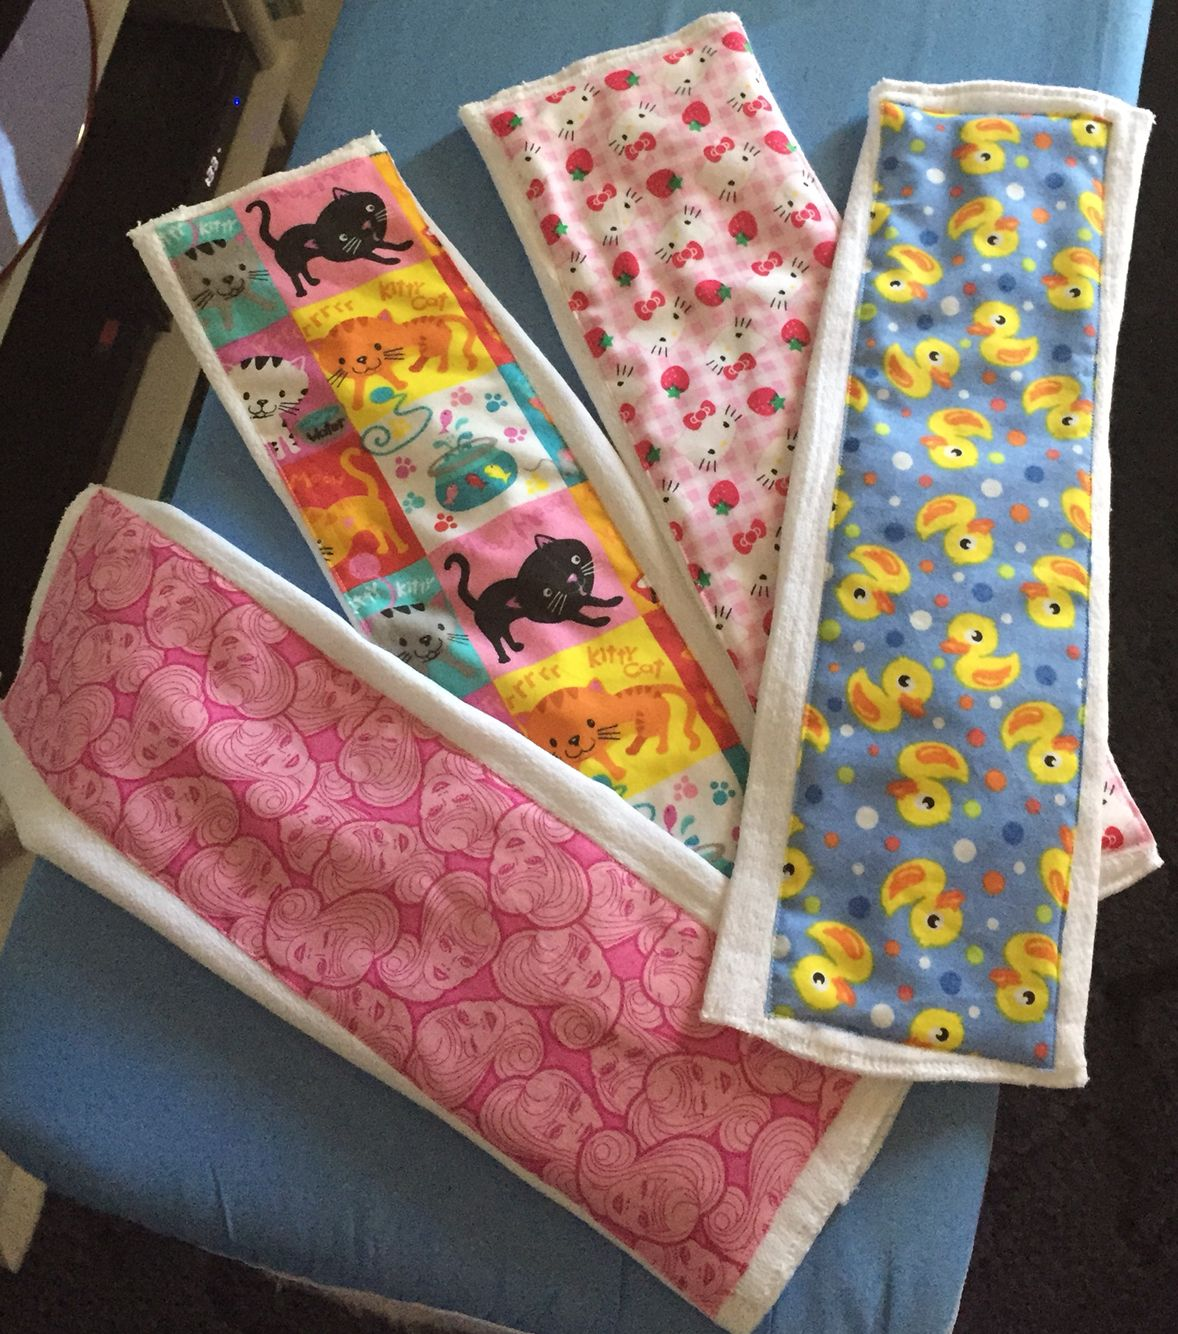 Baby burping cloths, homemade from cotton patterns and cloth diapers.